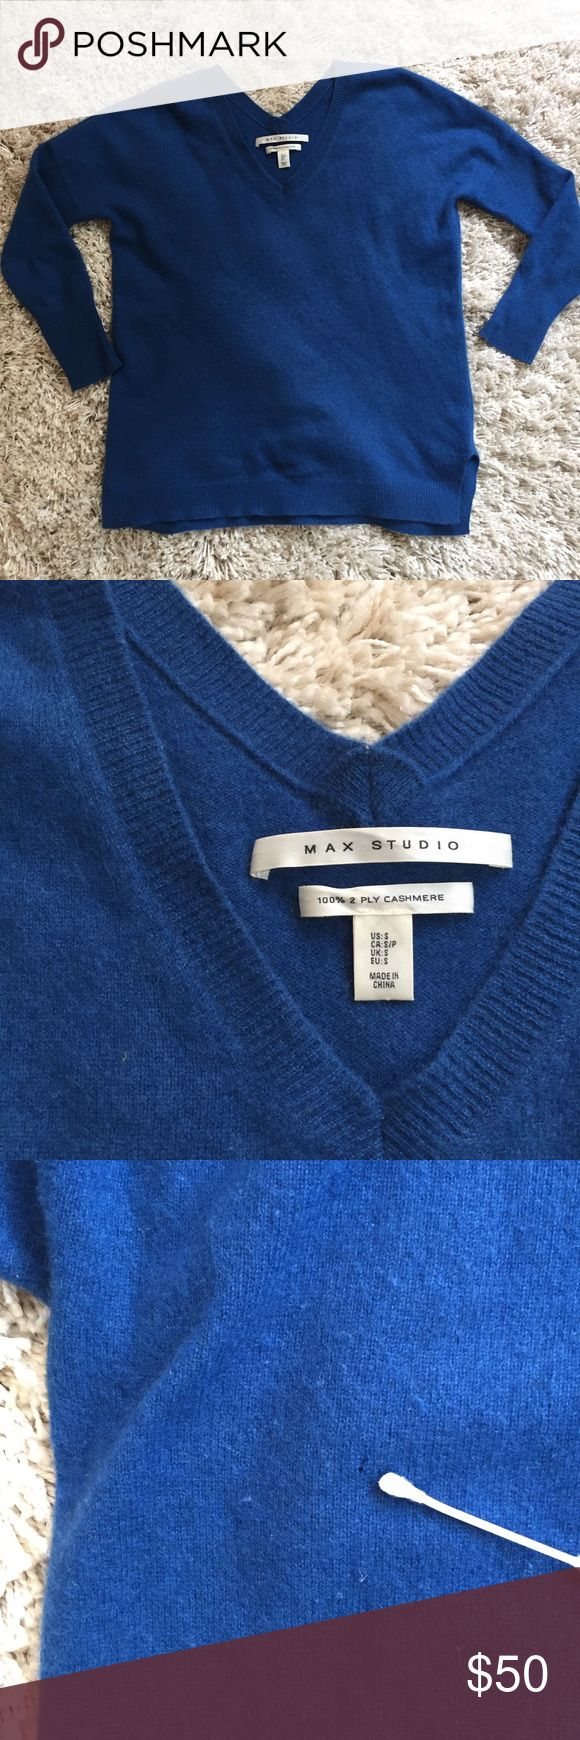 100% Cashmere Max Studio Sweater, Size S + Amazing royal blue color 😍 + 100% 2-ply Cashmere   + Perfect for fall and winter  + Small hole on the back near left shoulder. Pictured and sized next to a Q-tip.   ⭐️All items are steamed cleaned and shipped within 48 hours of your purchase.   ⭐️If you would like any additional photos or have any questions please let me know.  ⭐️Sorry, no trades. But will listen to ALL fair offers. Thanks for shopping! Max Studio Sweaters V-Necks